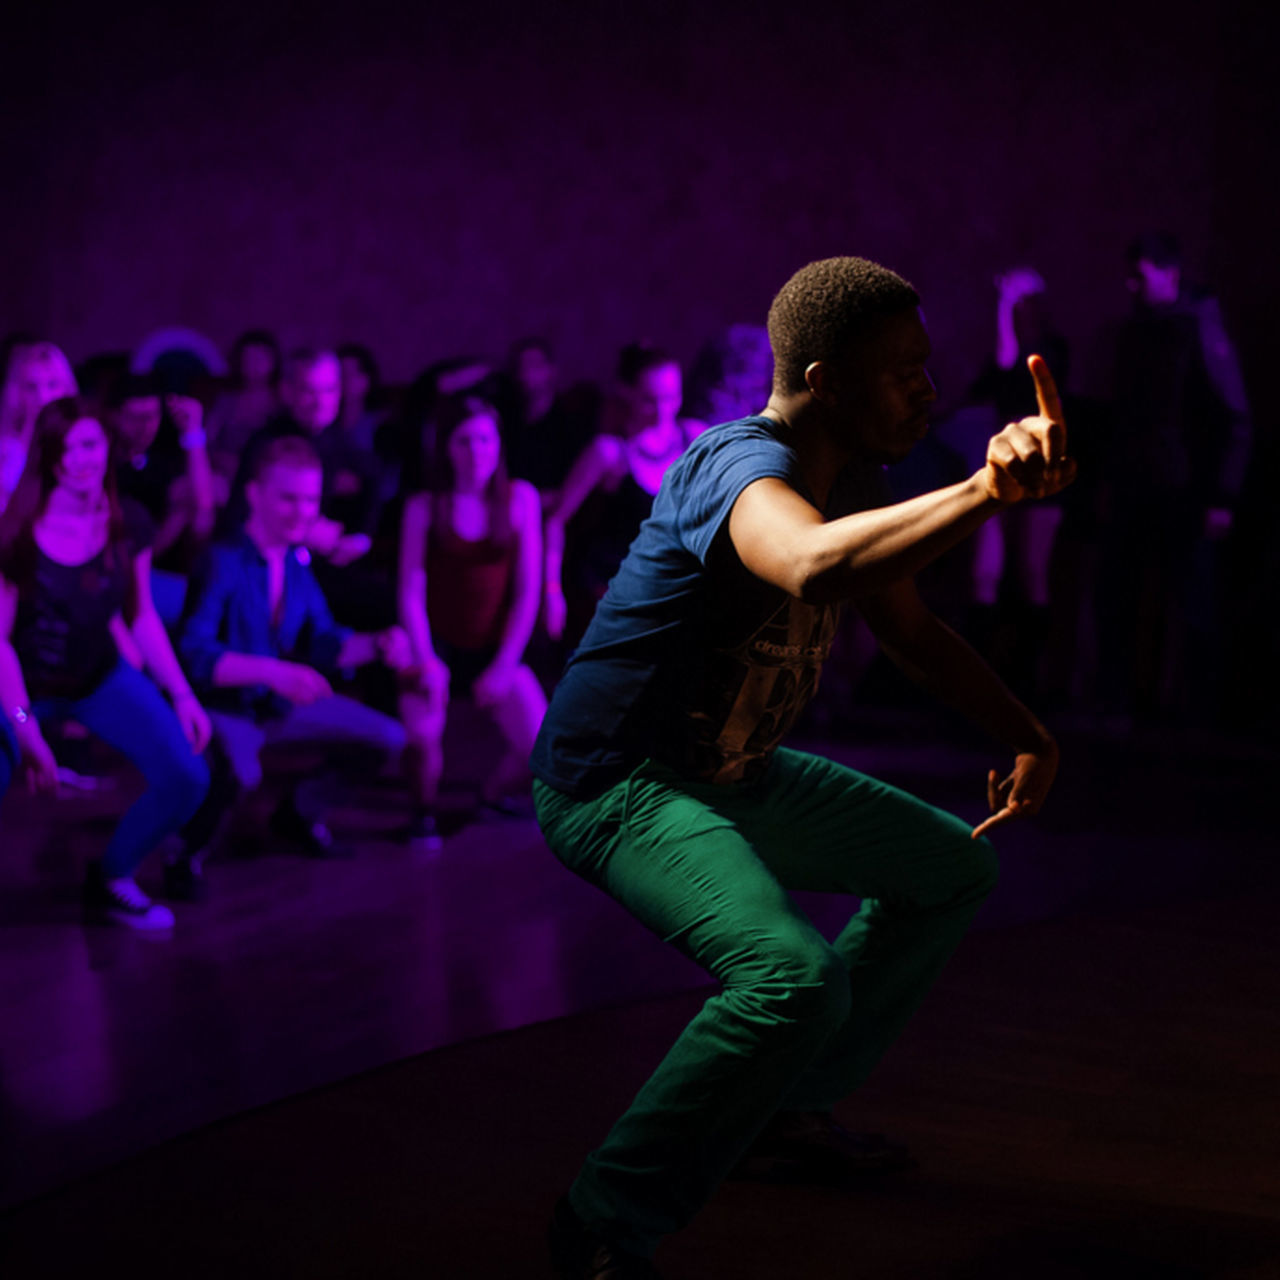 Music Performance Nightlife Arts Culture And Entertainment Purple People Nightclub Night Men One Person Event Dance Dancer Light And Shadow Atmospheric Mood